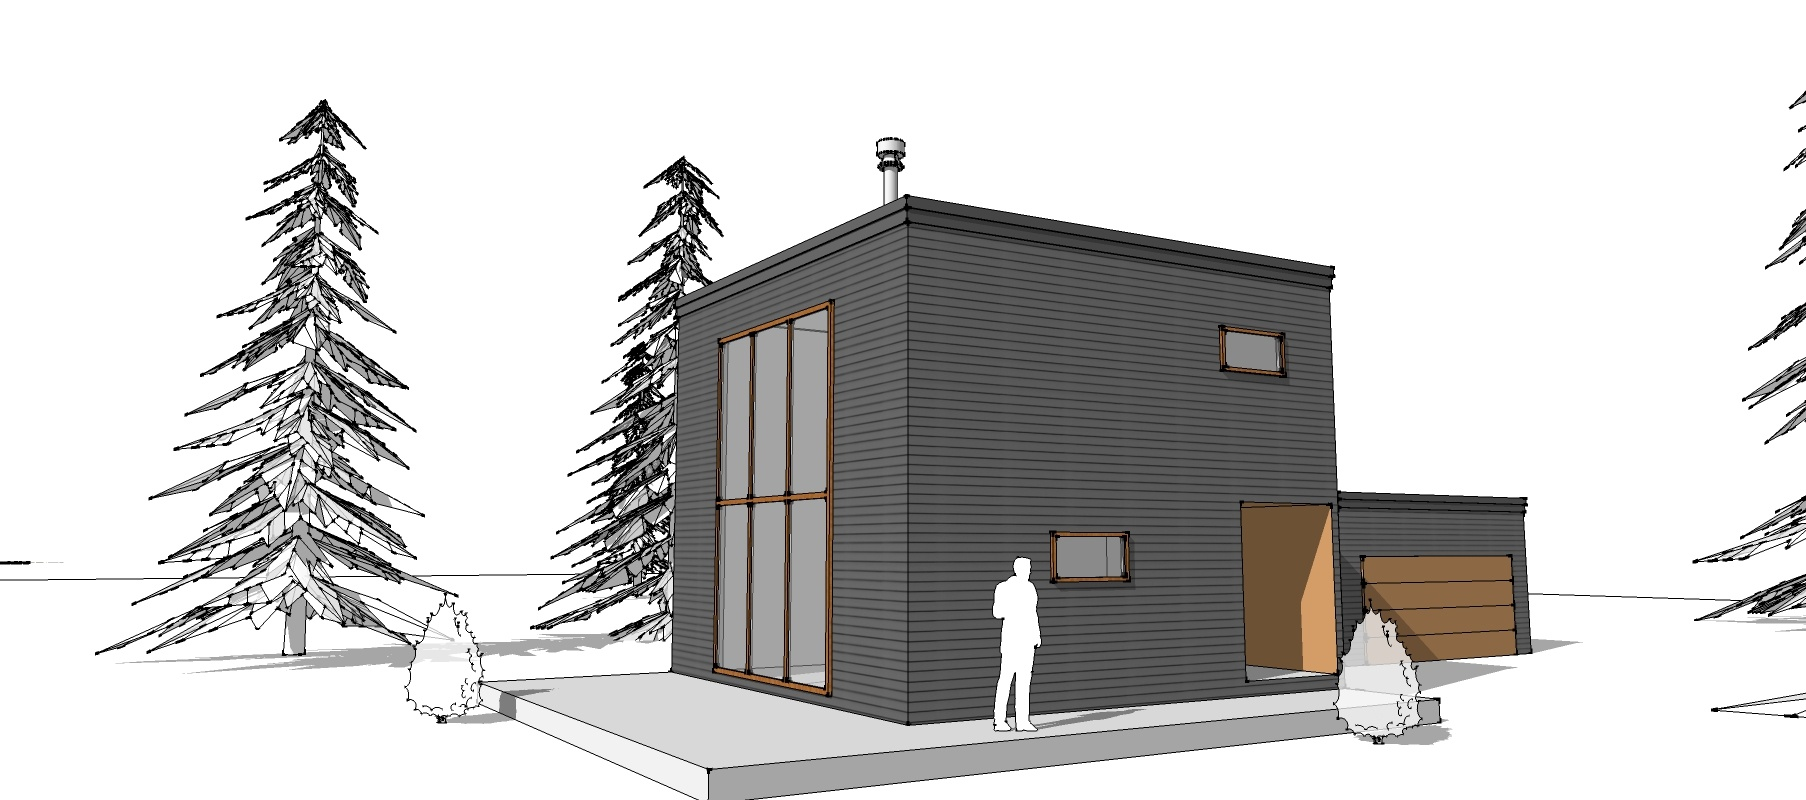 Tiny houses with northern michigan style by beag haus for Tiny house holland michigan